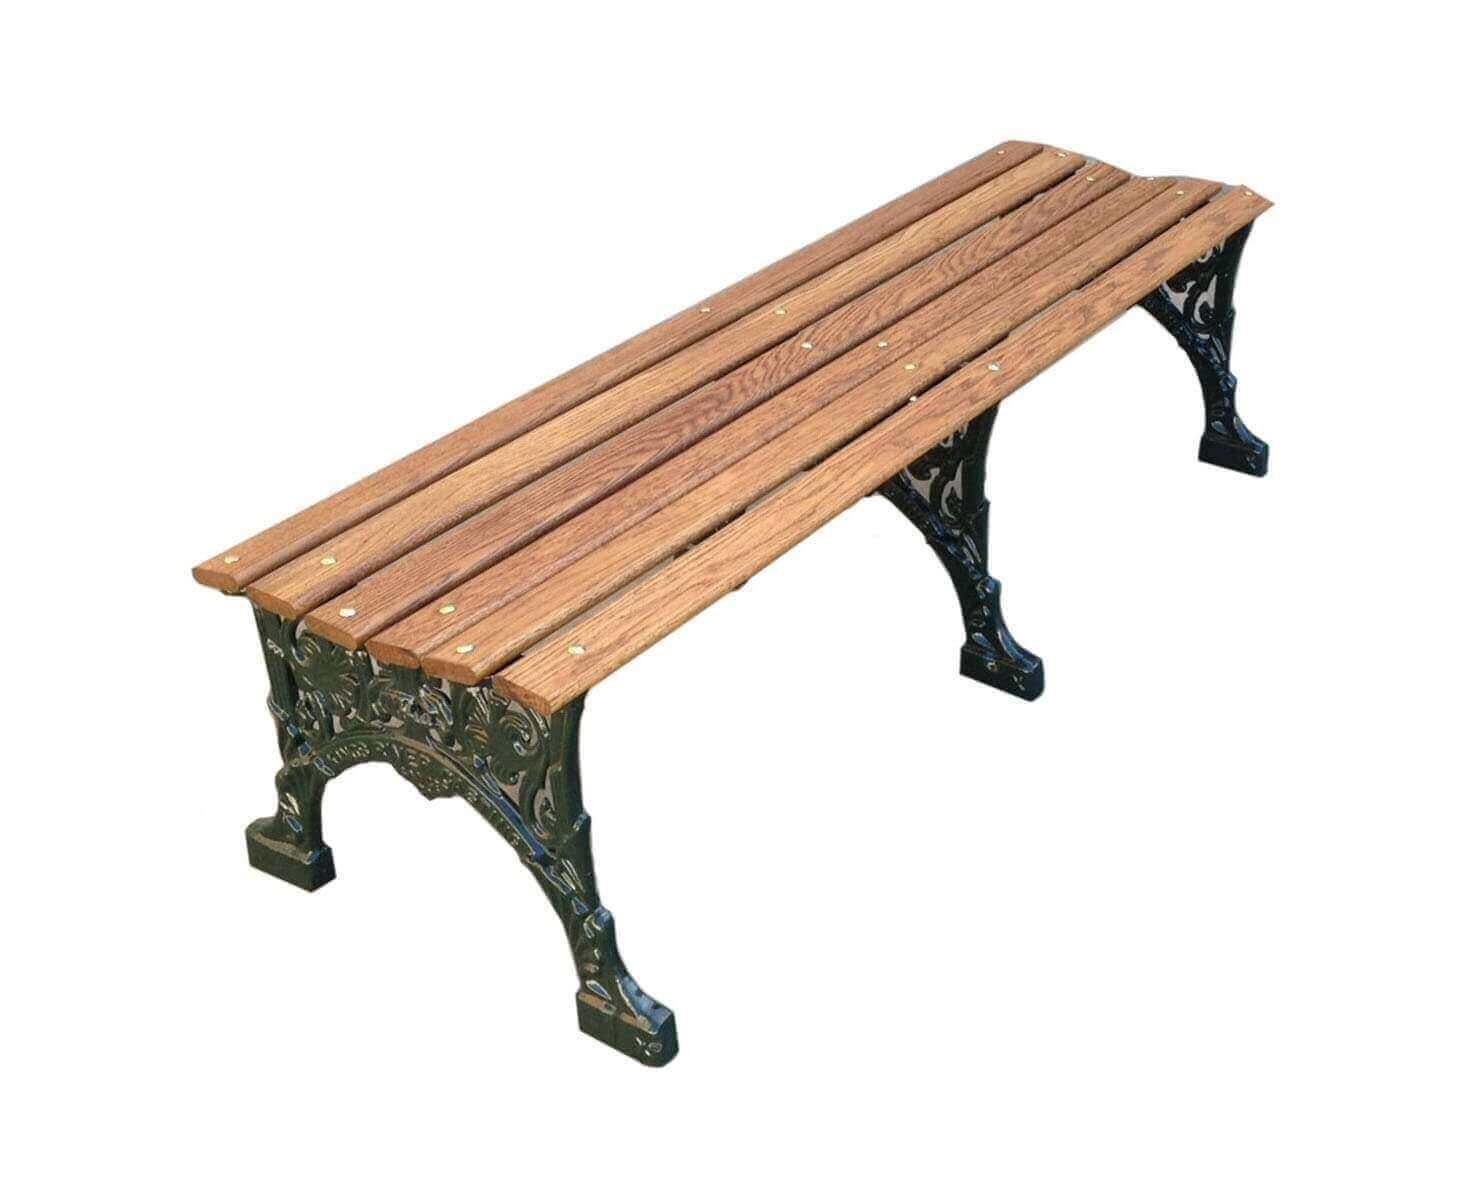 Commercial Wood Benches | Wooden Benches - Furniture Leisure